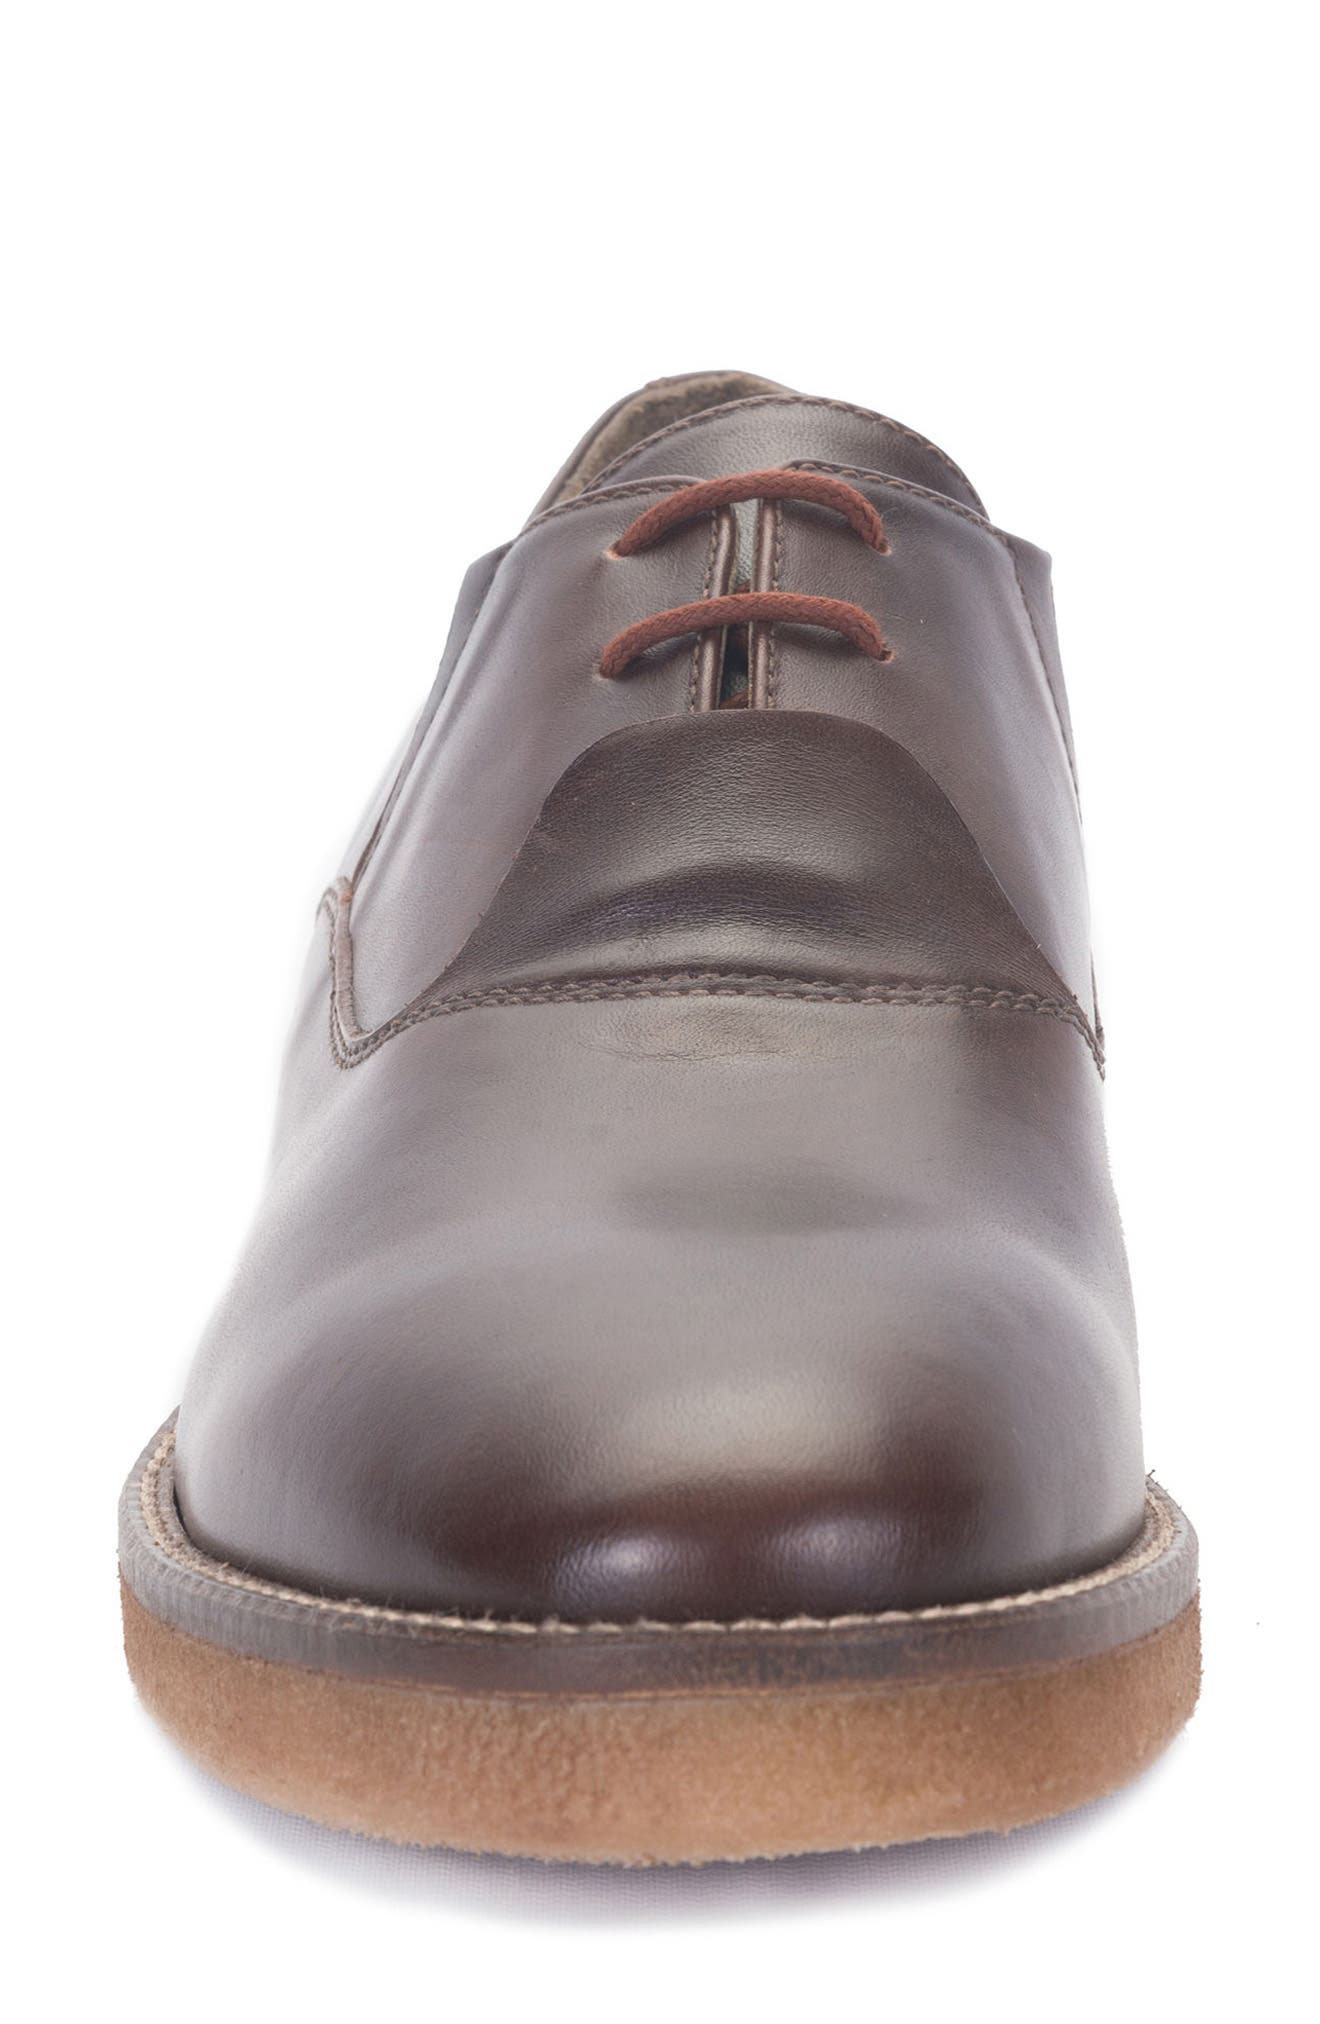 Molinella Water-Resistant Oxford,                             Alternate thumbnail 4, color,                             Ruggine Leather